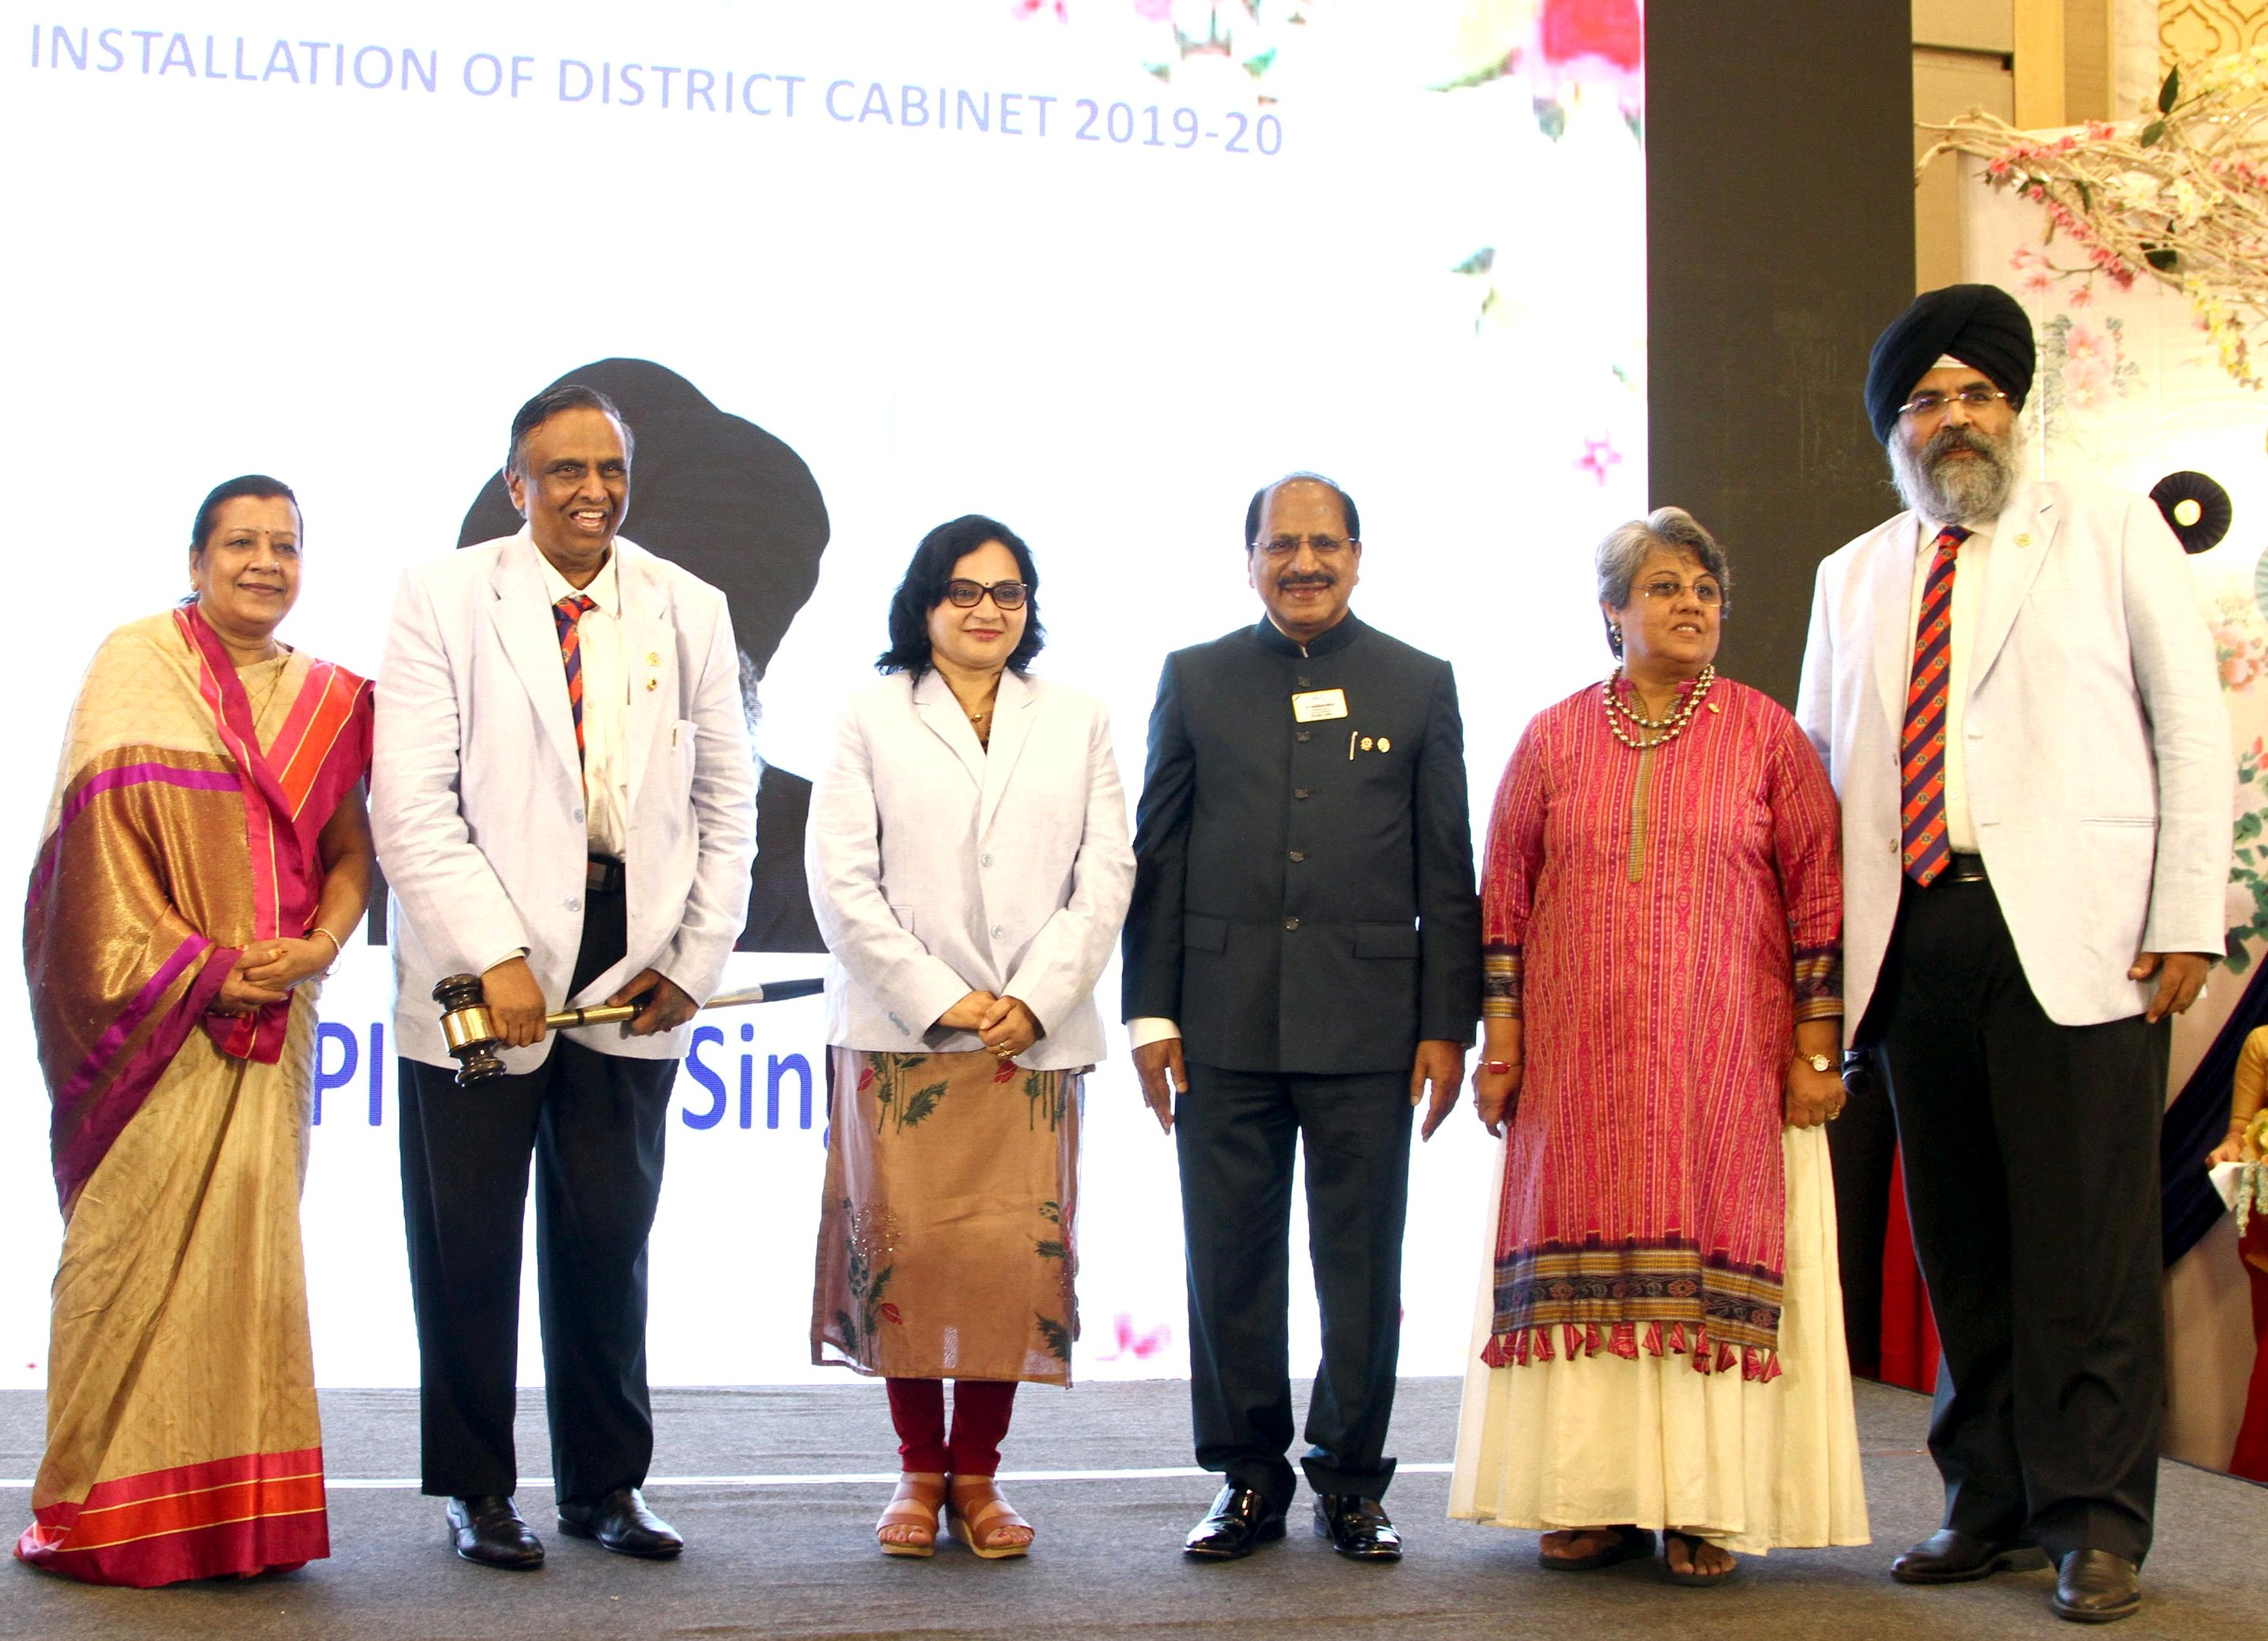 Lions Clubs International Organised Installation Ceremony Of